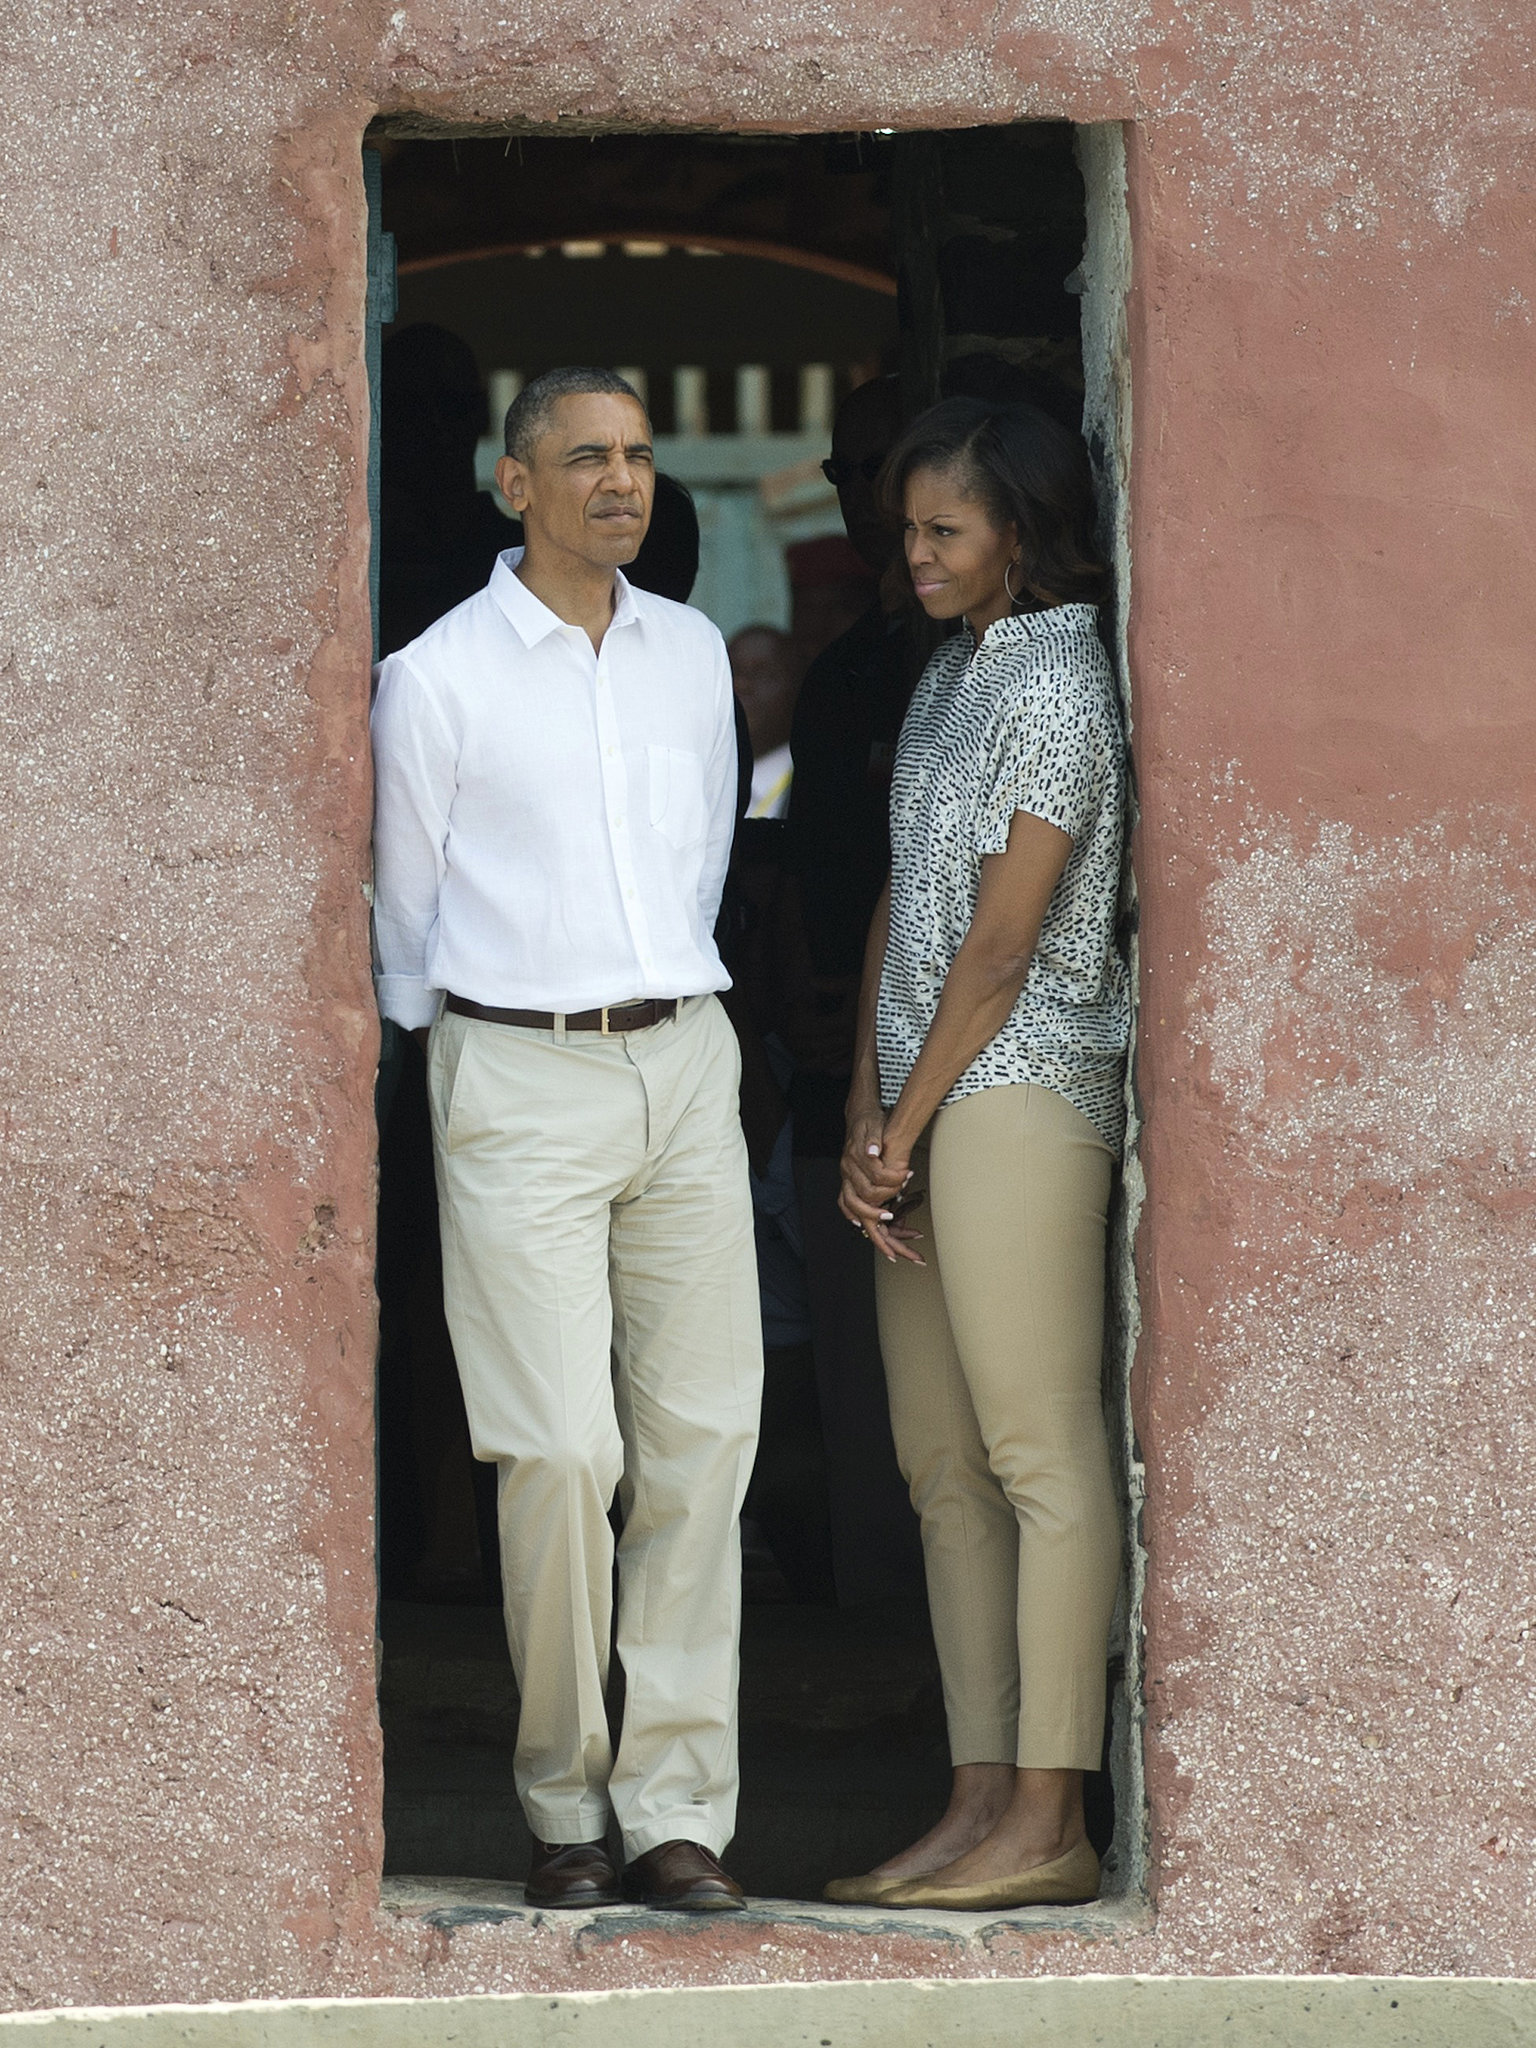 The first lady was laid-back but undeniably put-together in khaki cropped trousers and a printed blouse while visiting the Door of No Return in Dakar with the president.